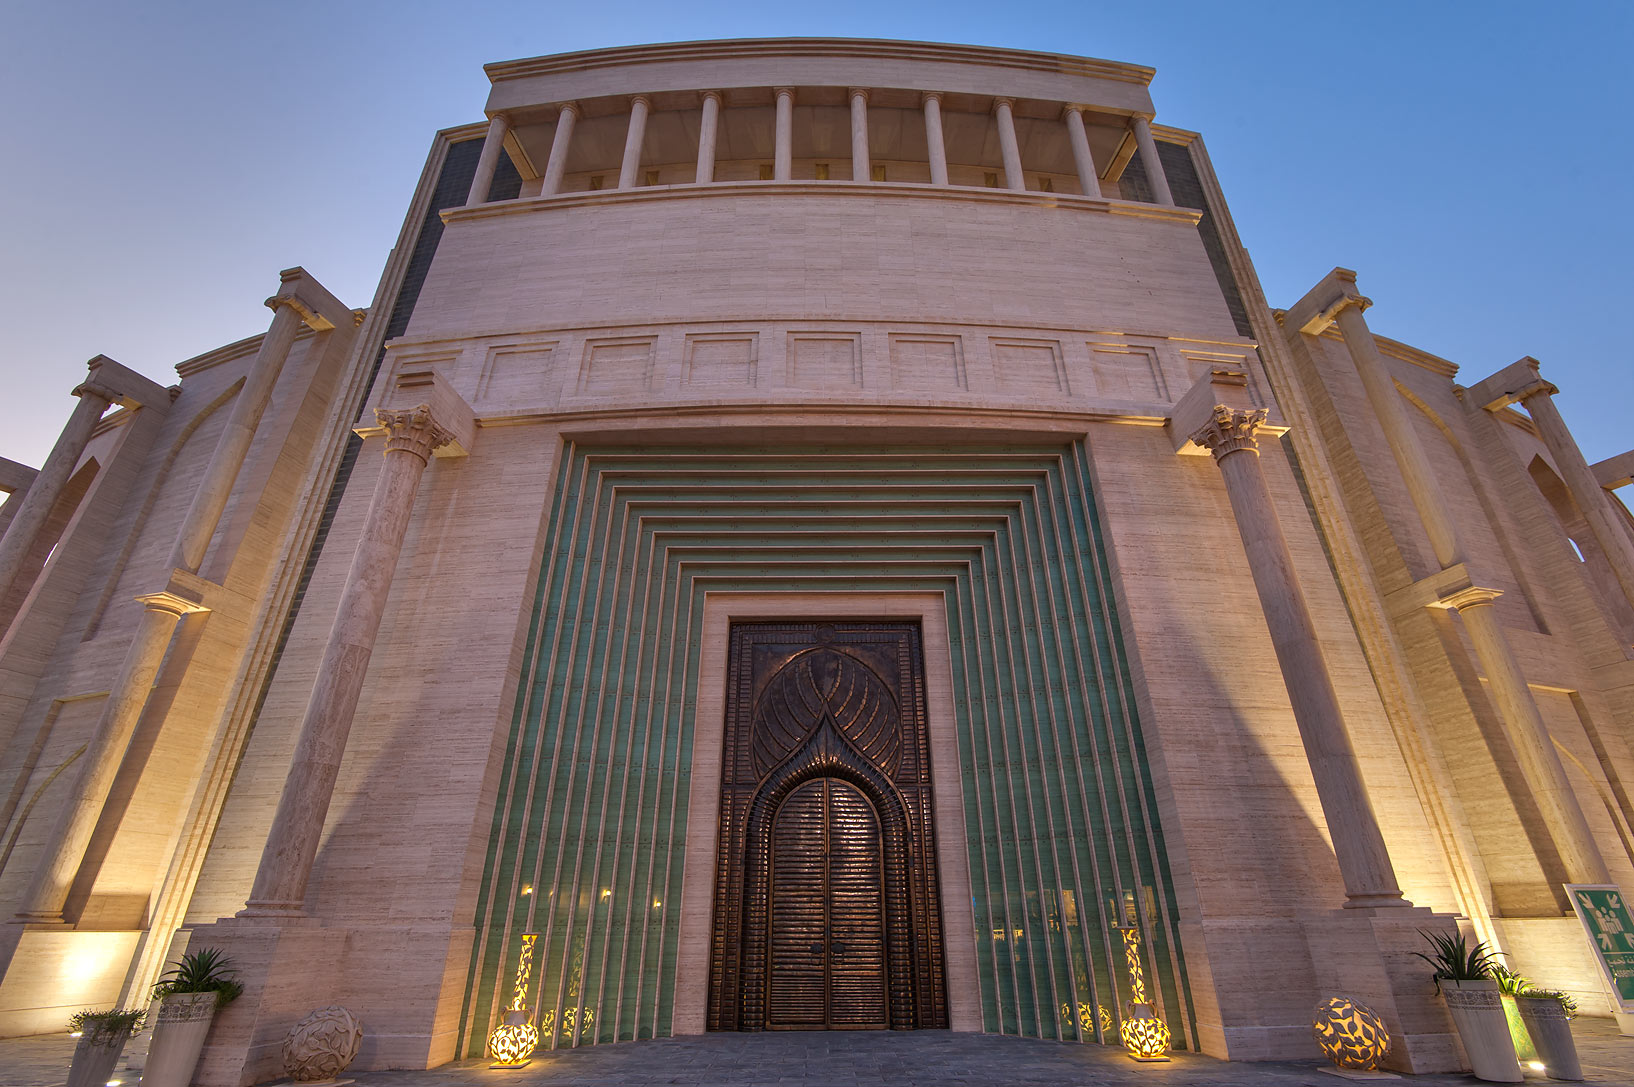 Copper gate of amphitheatre in Katara Cultural Village. Doha, Qatar